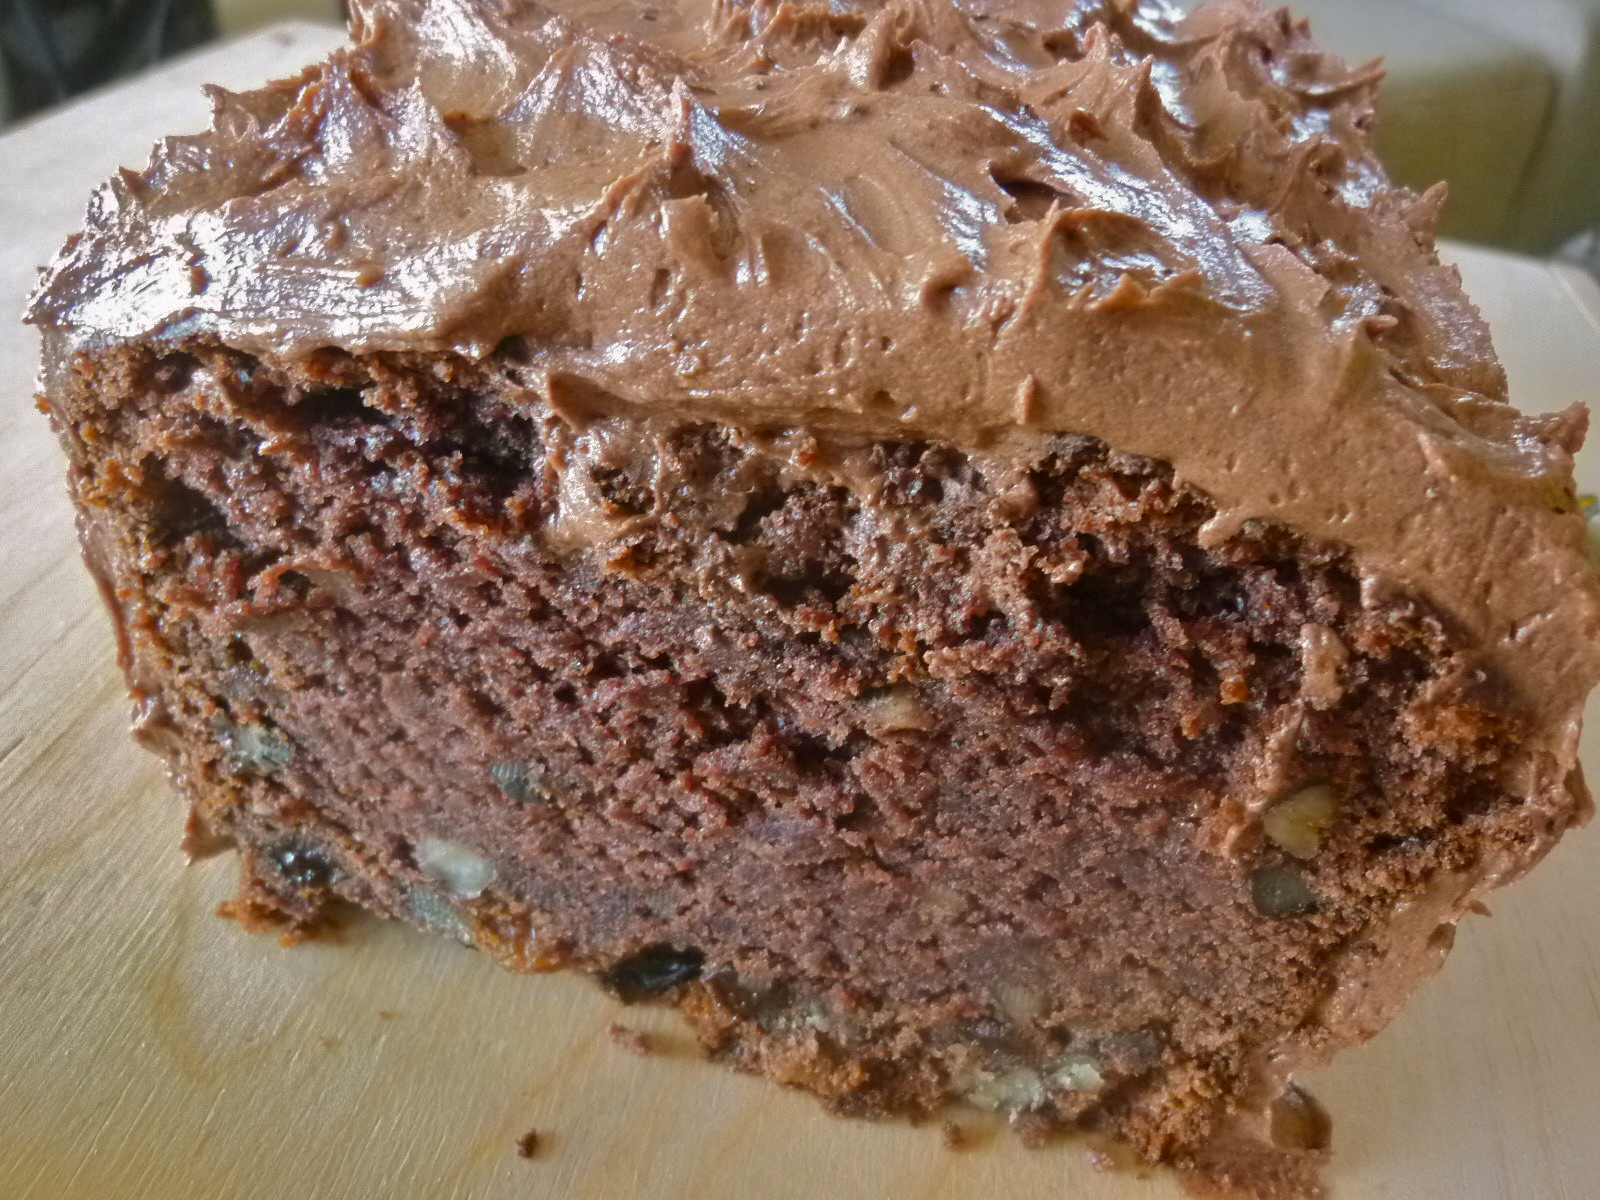 Diary of a Mad Hausfrau: Velvet Mashed Potato Chocolate Cake